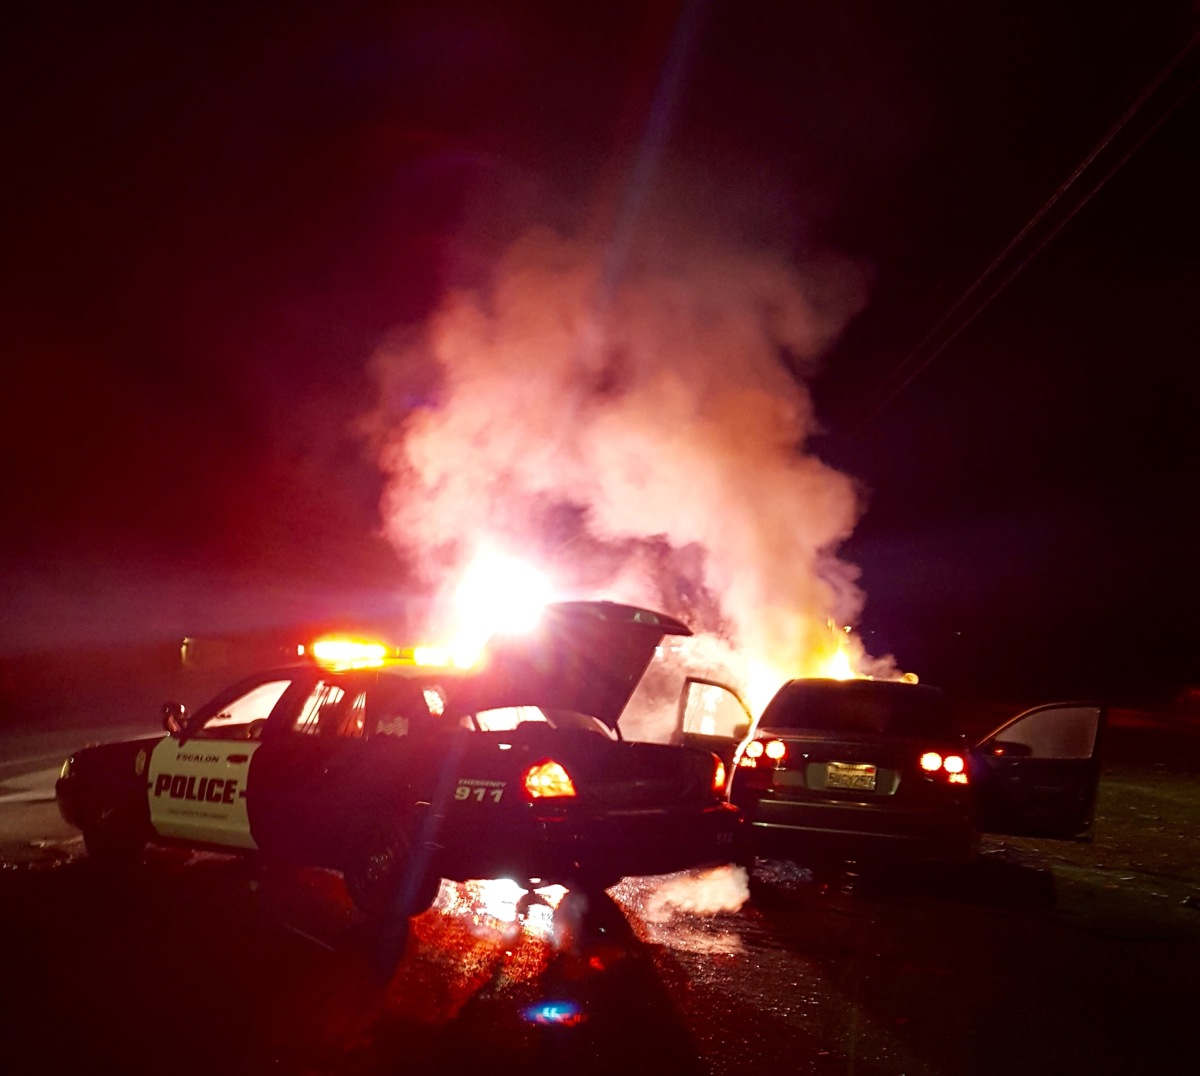 ESCALON POLICE VEHICLES INVOLVED IN LAST NIGHT'S TRAFFIC ACCIDENT - OCTOBER 26, 2015